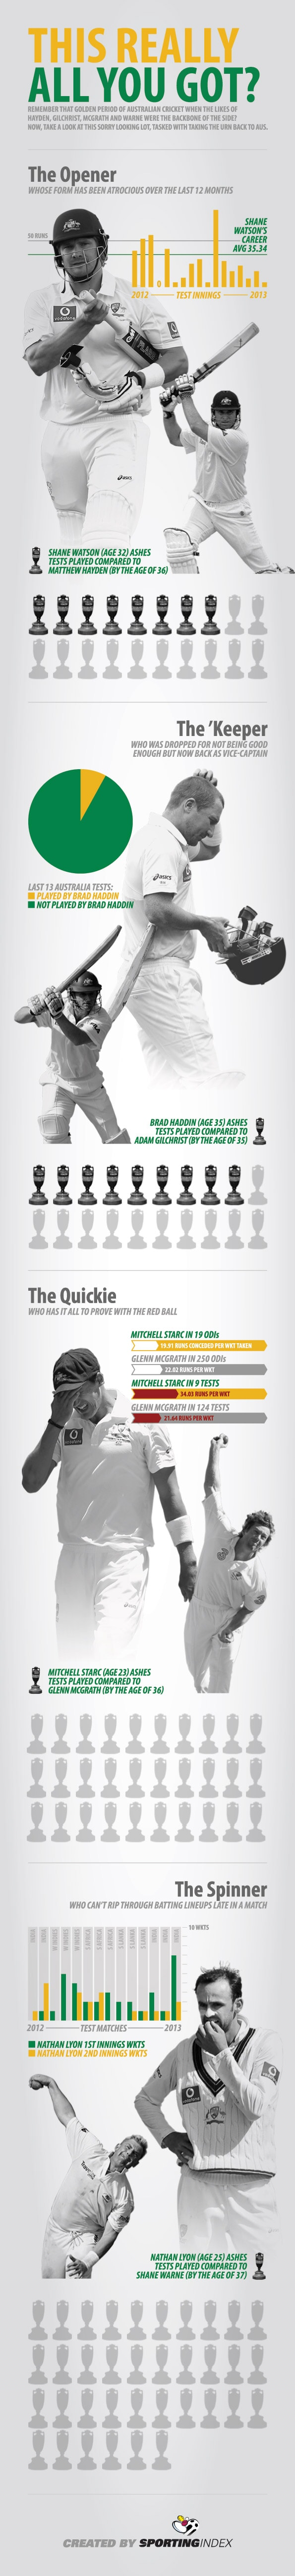 The Ashes Infographic